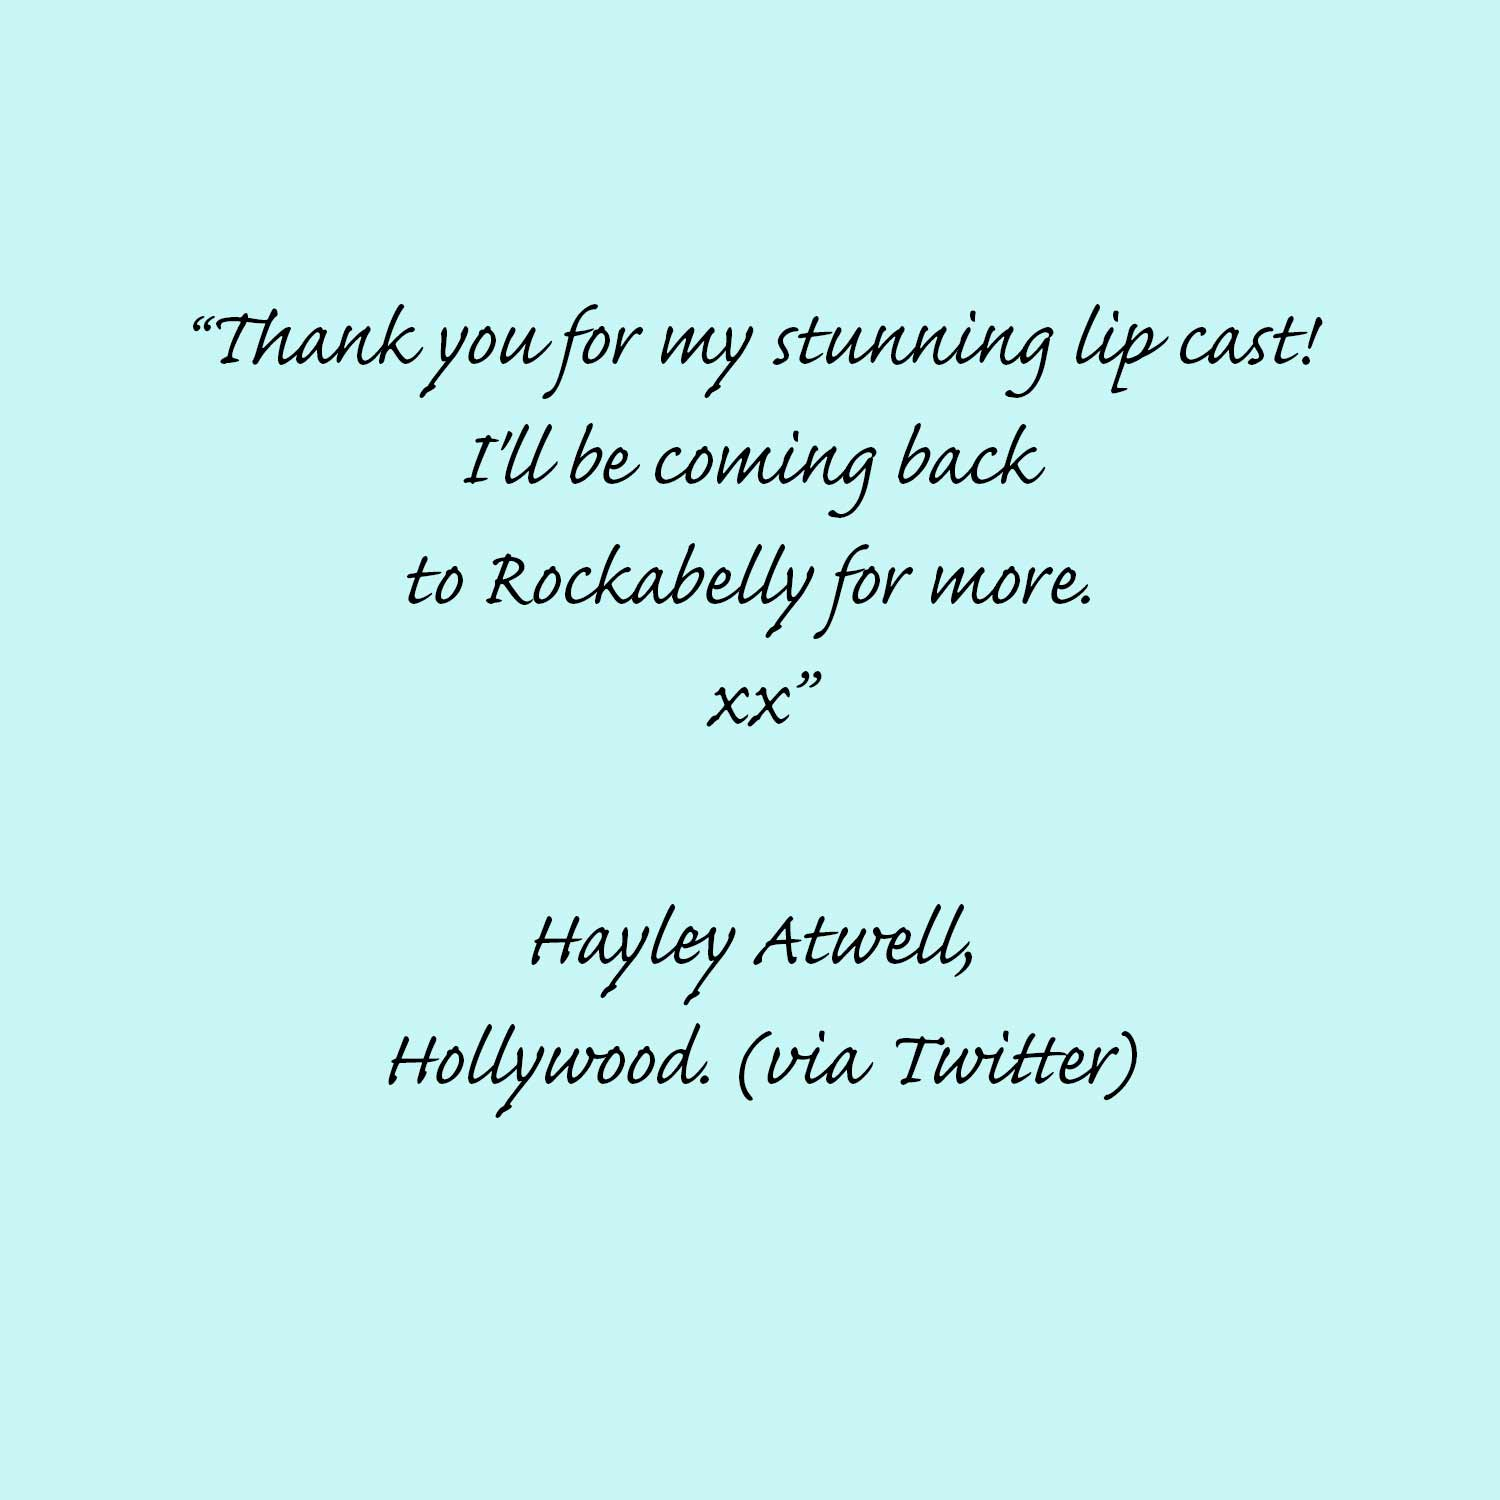 Hayley Atwell reviews Rockabelly Lifecasts